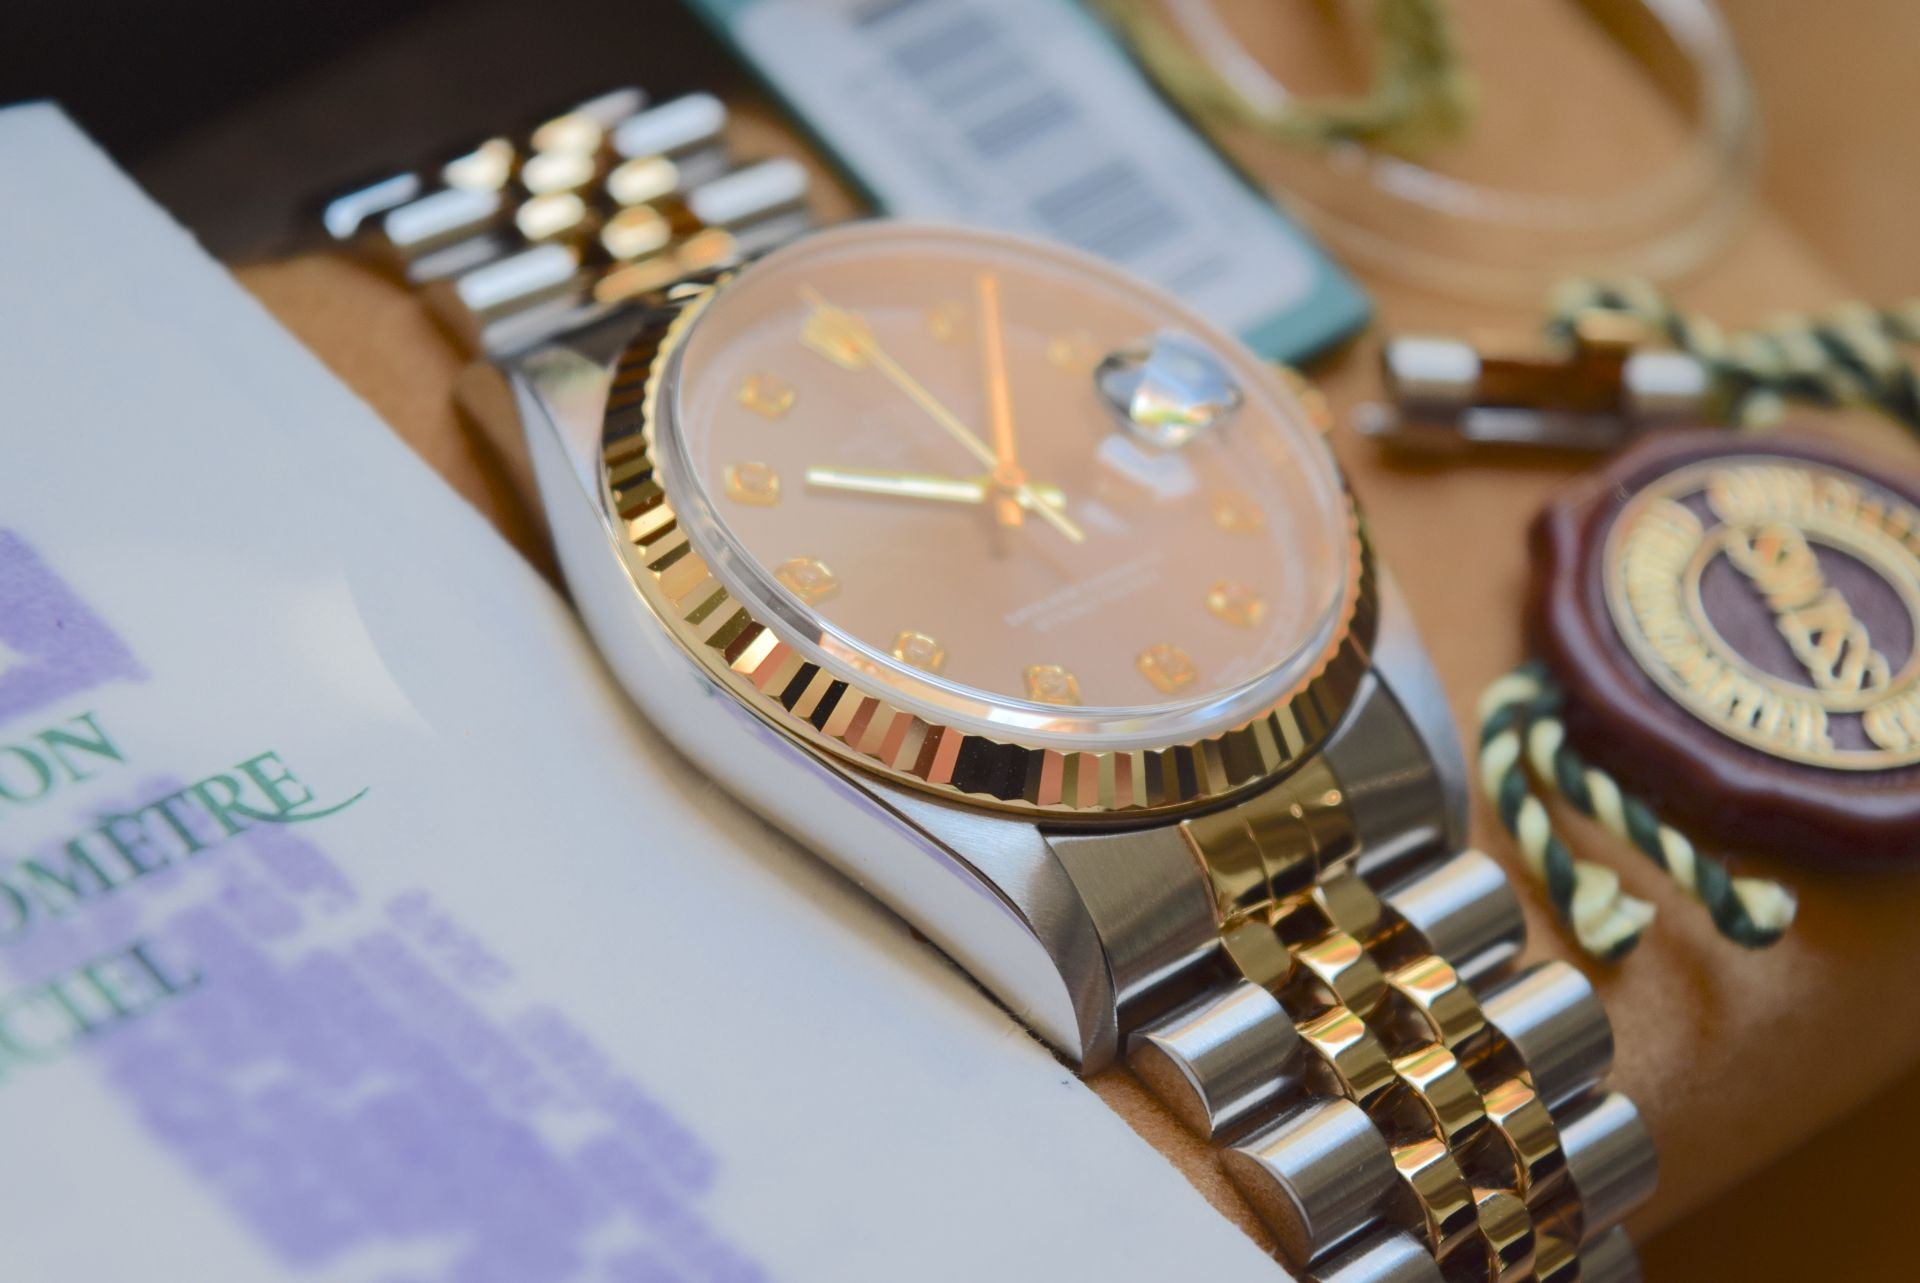 18CT GOLD/ STEEL ROLEX DATEJUST - 36MM, MENS (COMPLETE SET INC BOX, PAPERS, TAGS ETC) - Image 6 of 25